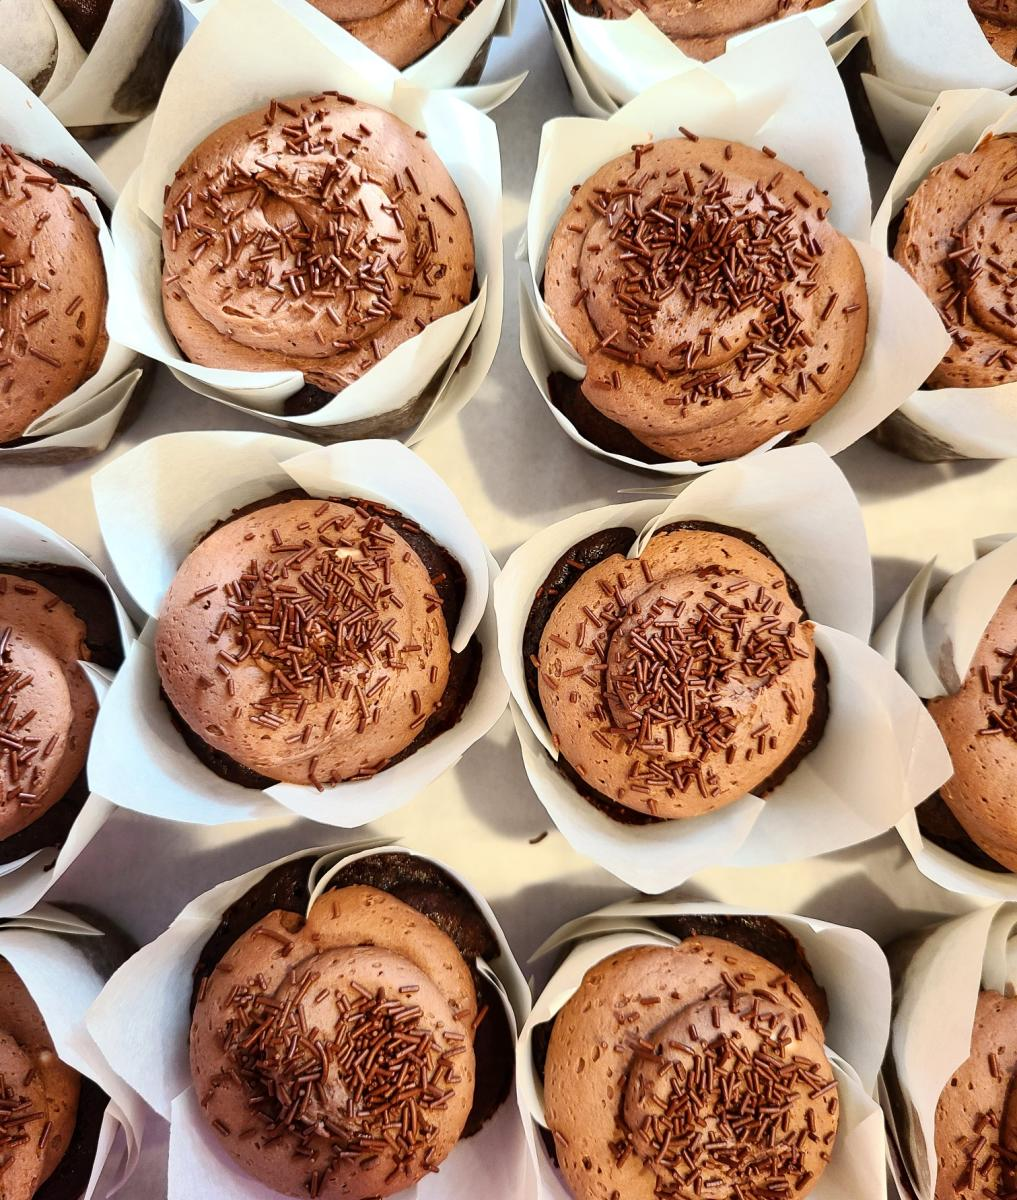 Hive Bakeshop's chocolate cupcakes with chocolate buttercream and sprinkles